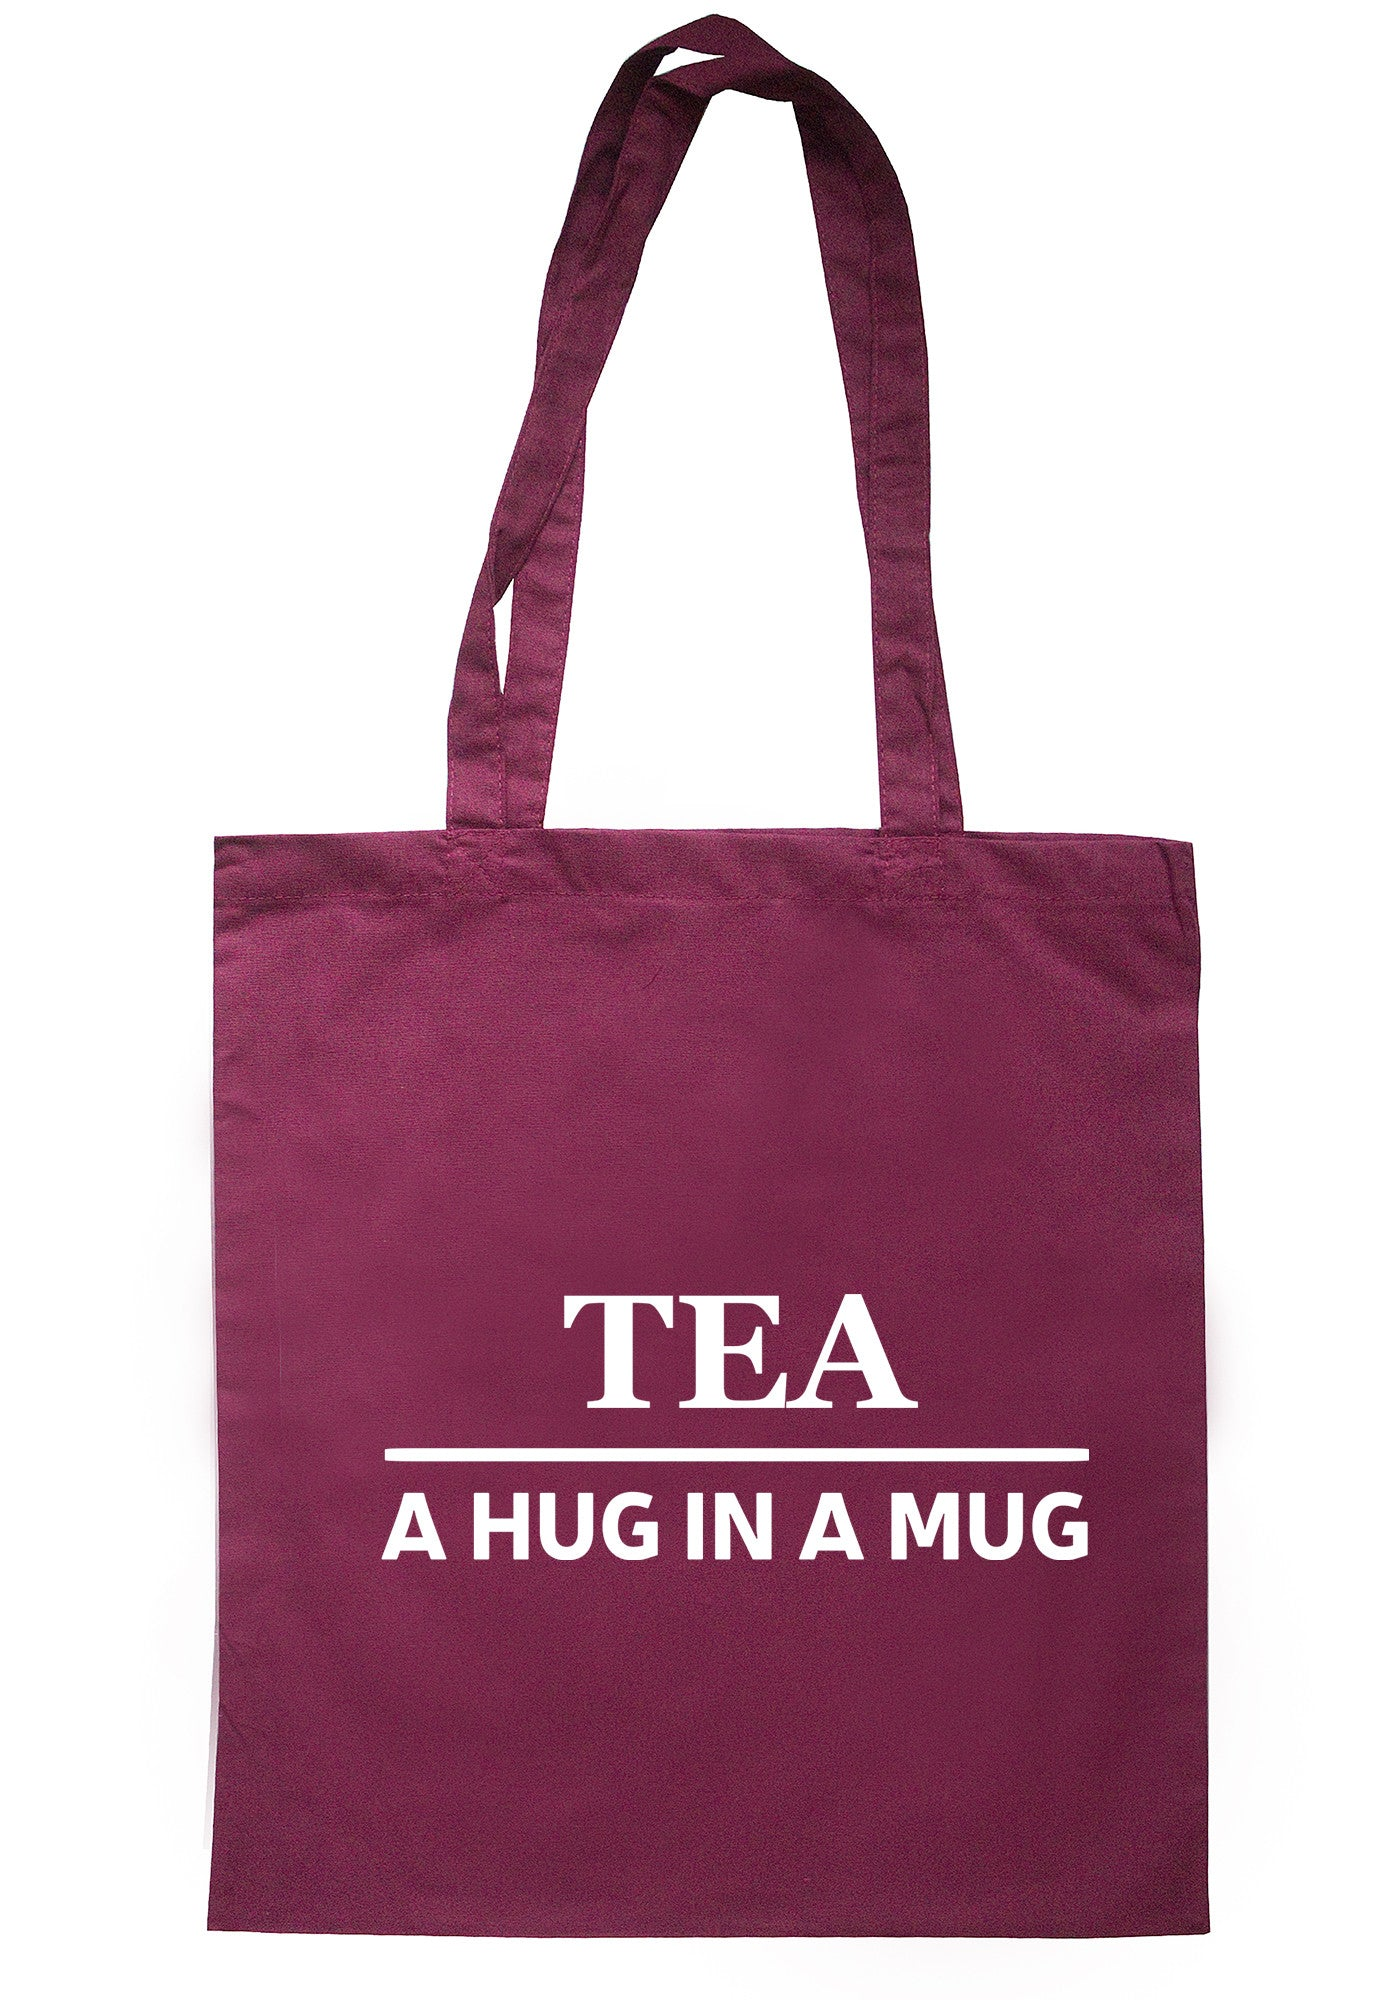 Tea A Hug In A Mug Tote Bag TB0486 - Illustrated Identity Ltd.